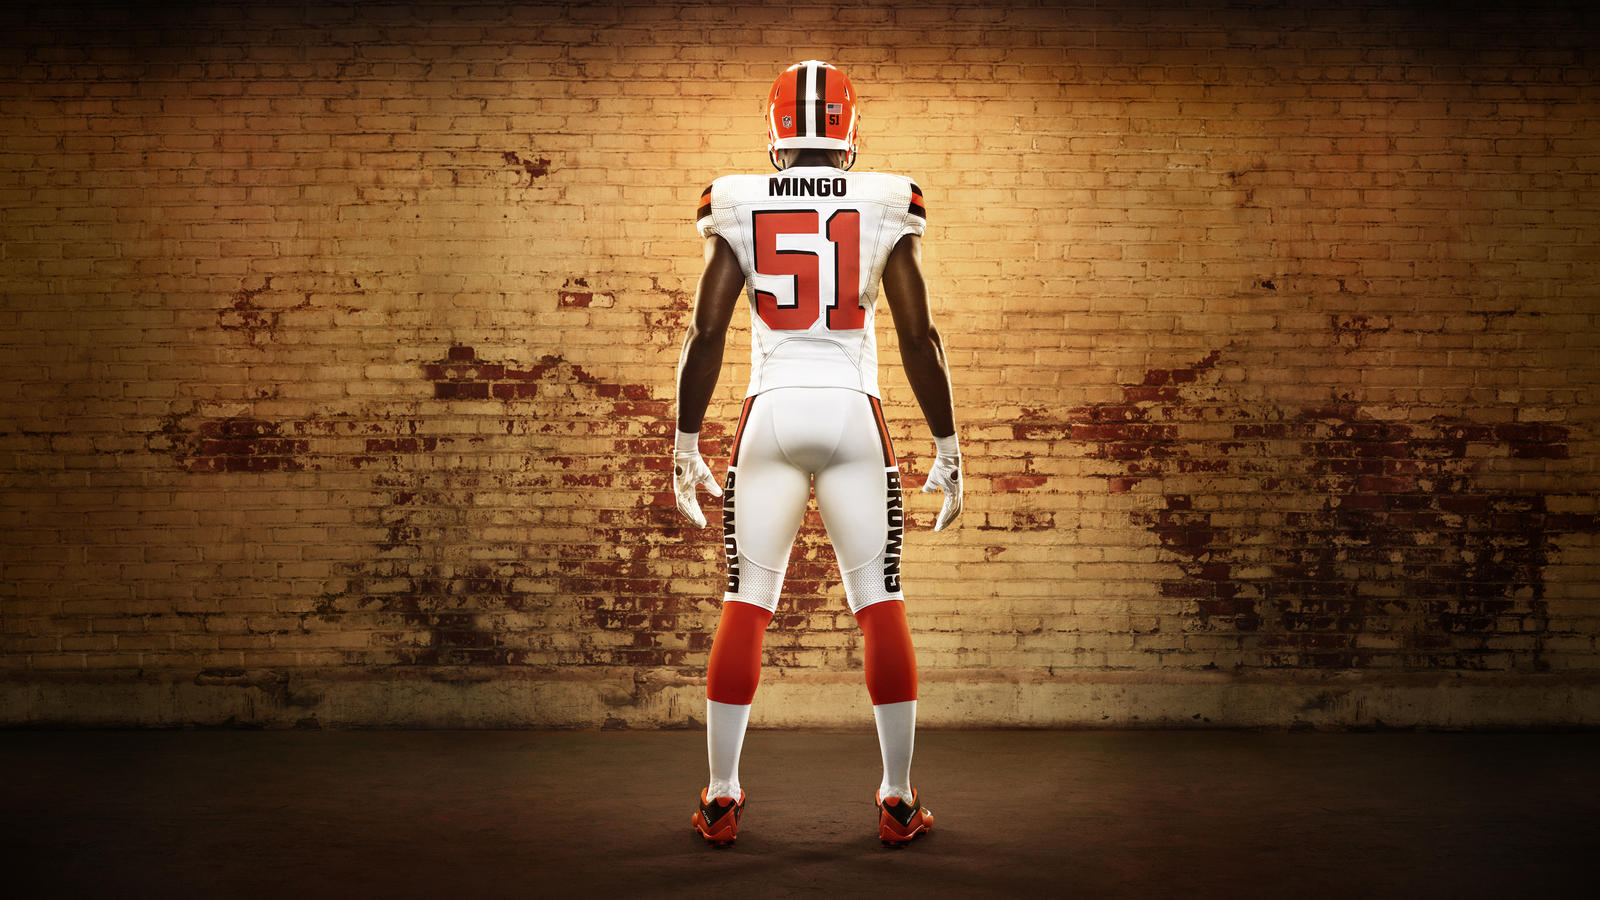 45626_268352_02a_Nike_FB_Cleveland_Barkevious_Mingo_Soldiers_0039_16X9